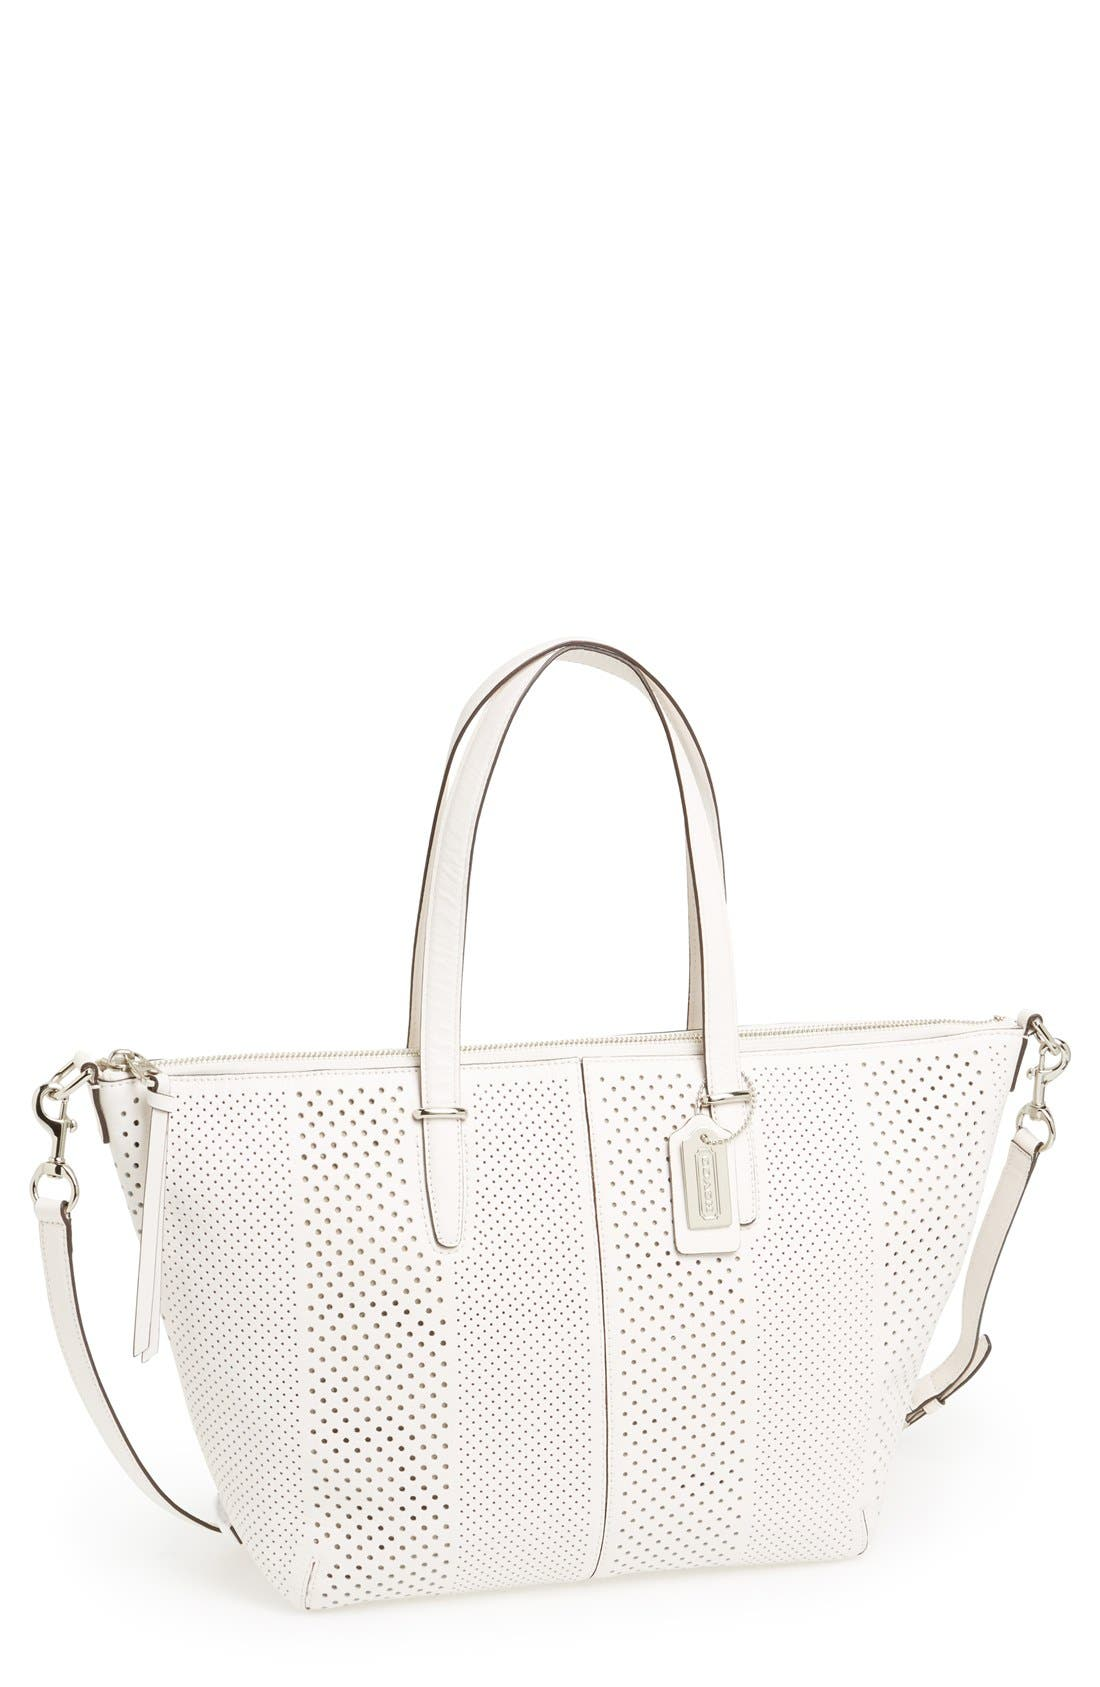 Alternate Image 1 Selected - COACH 'Bleecker' Perforated Leather Satchel